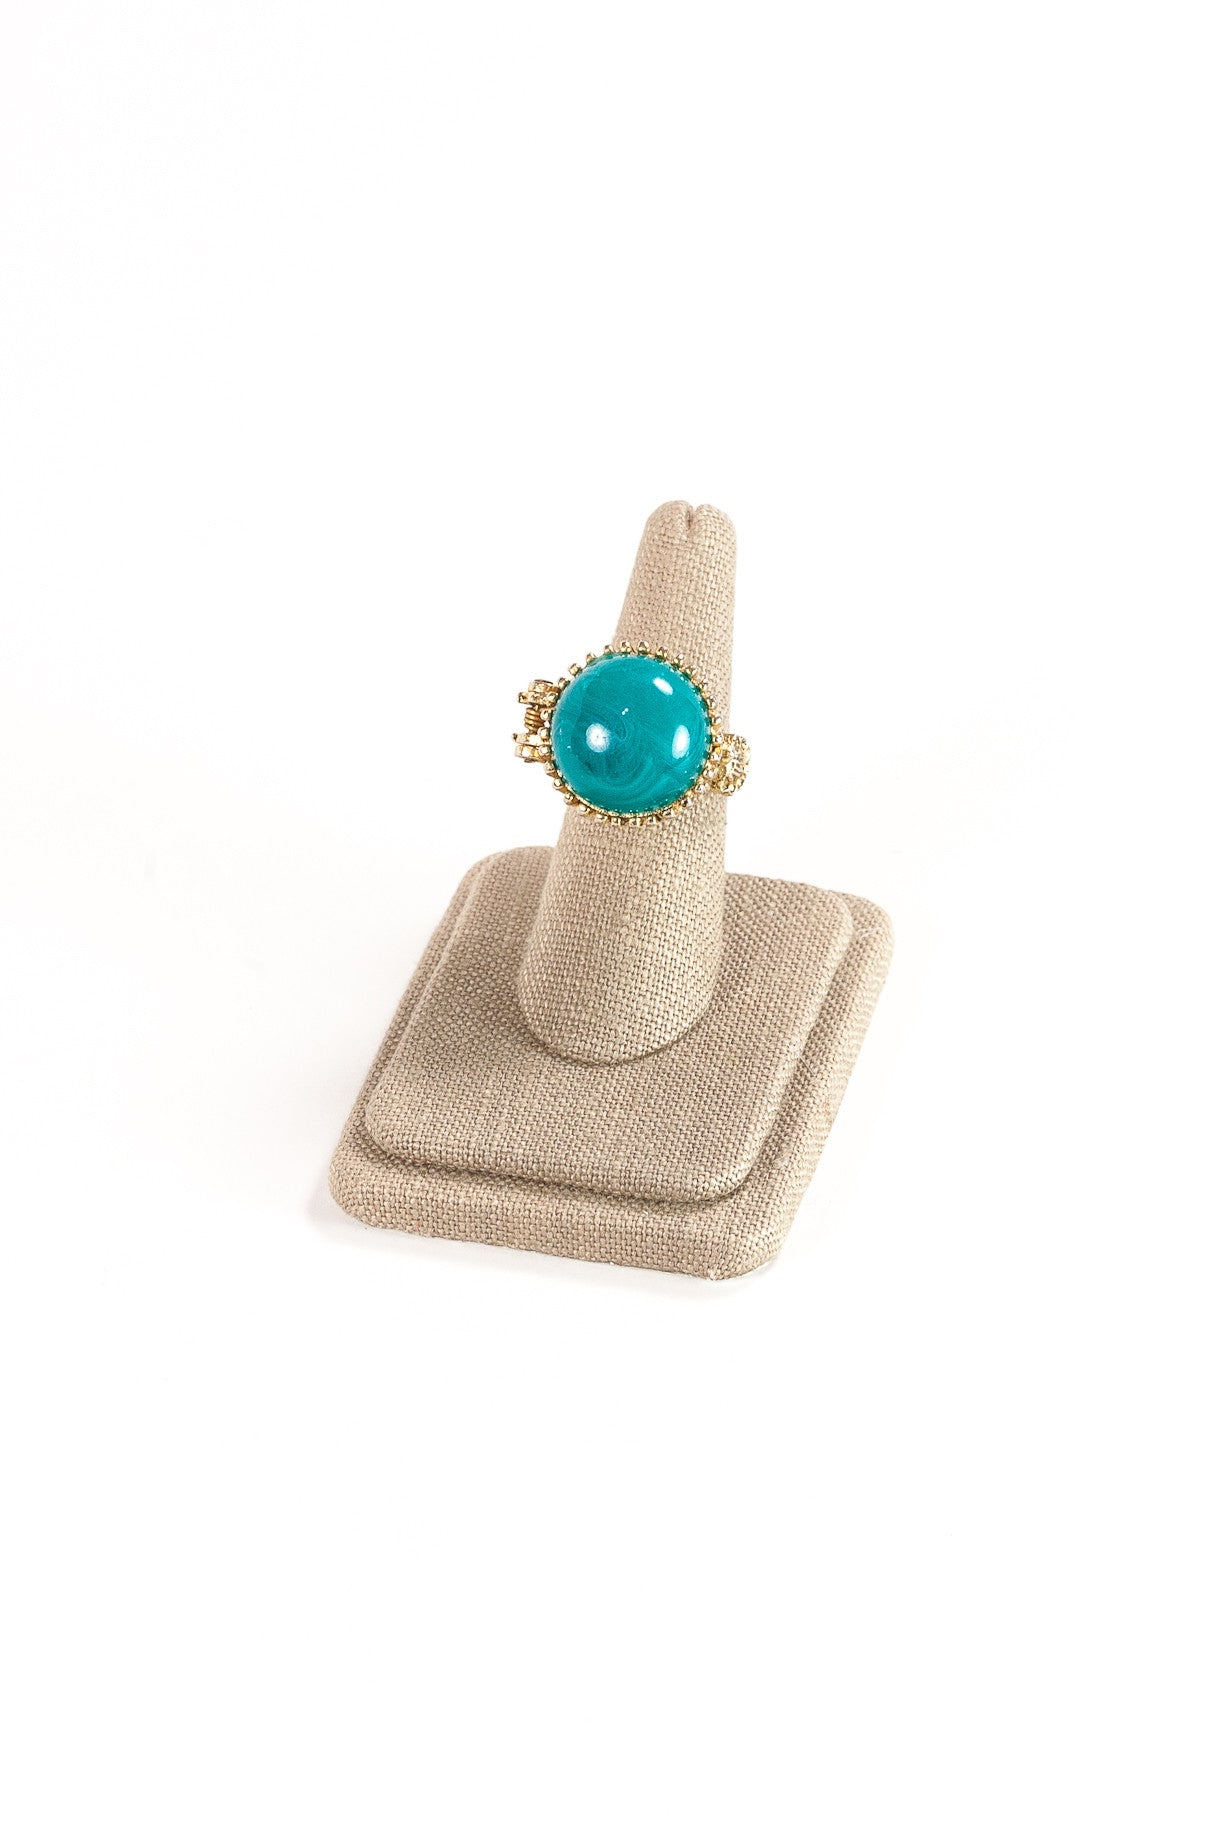 60's__Vintage__Teal Stone Cocktail Ring